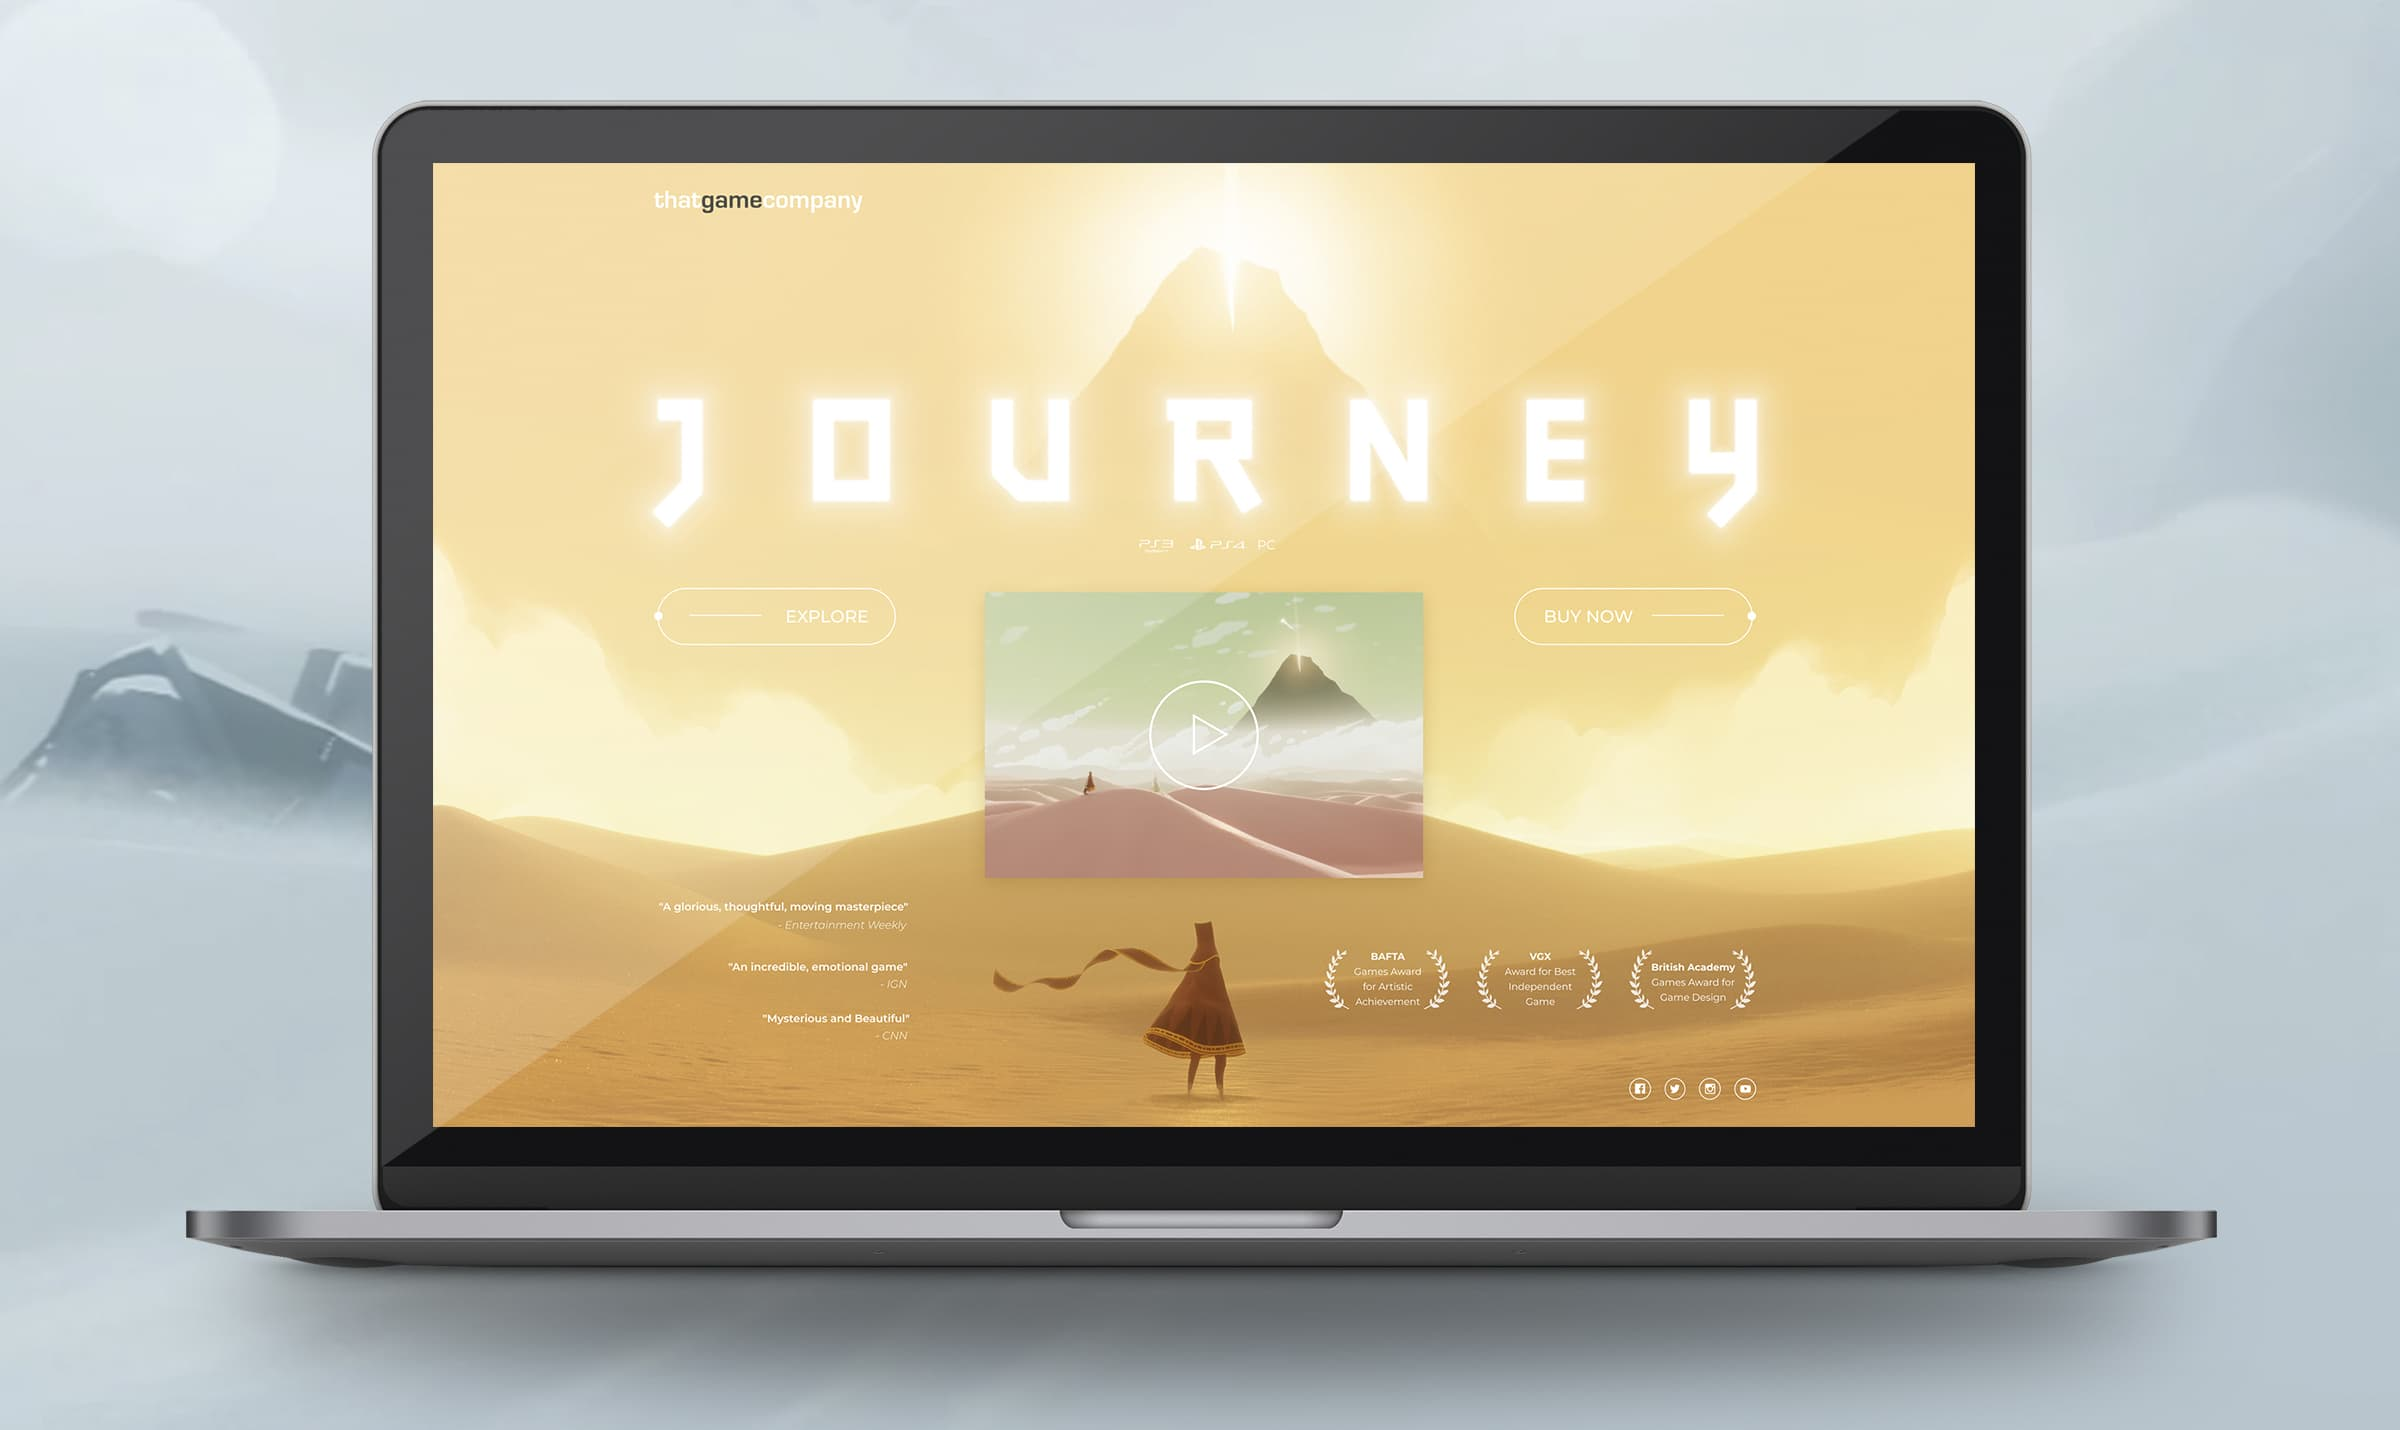 Journey game website landing page